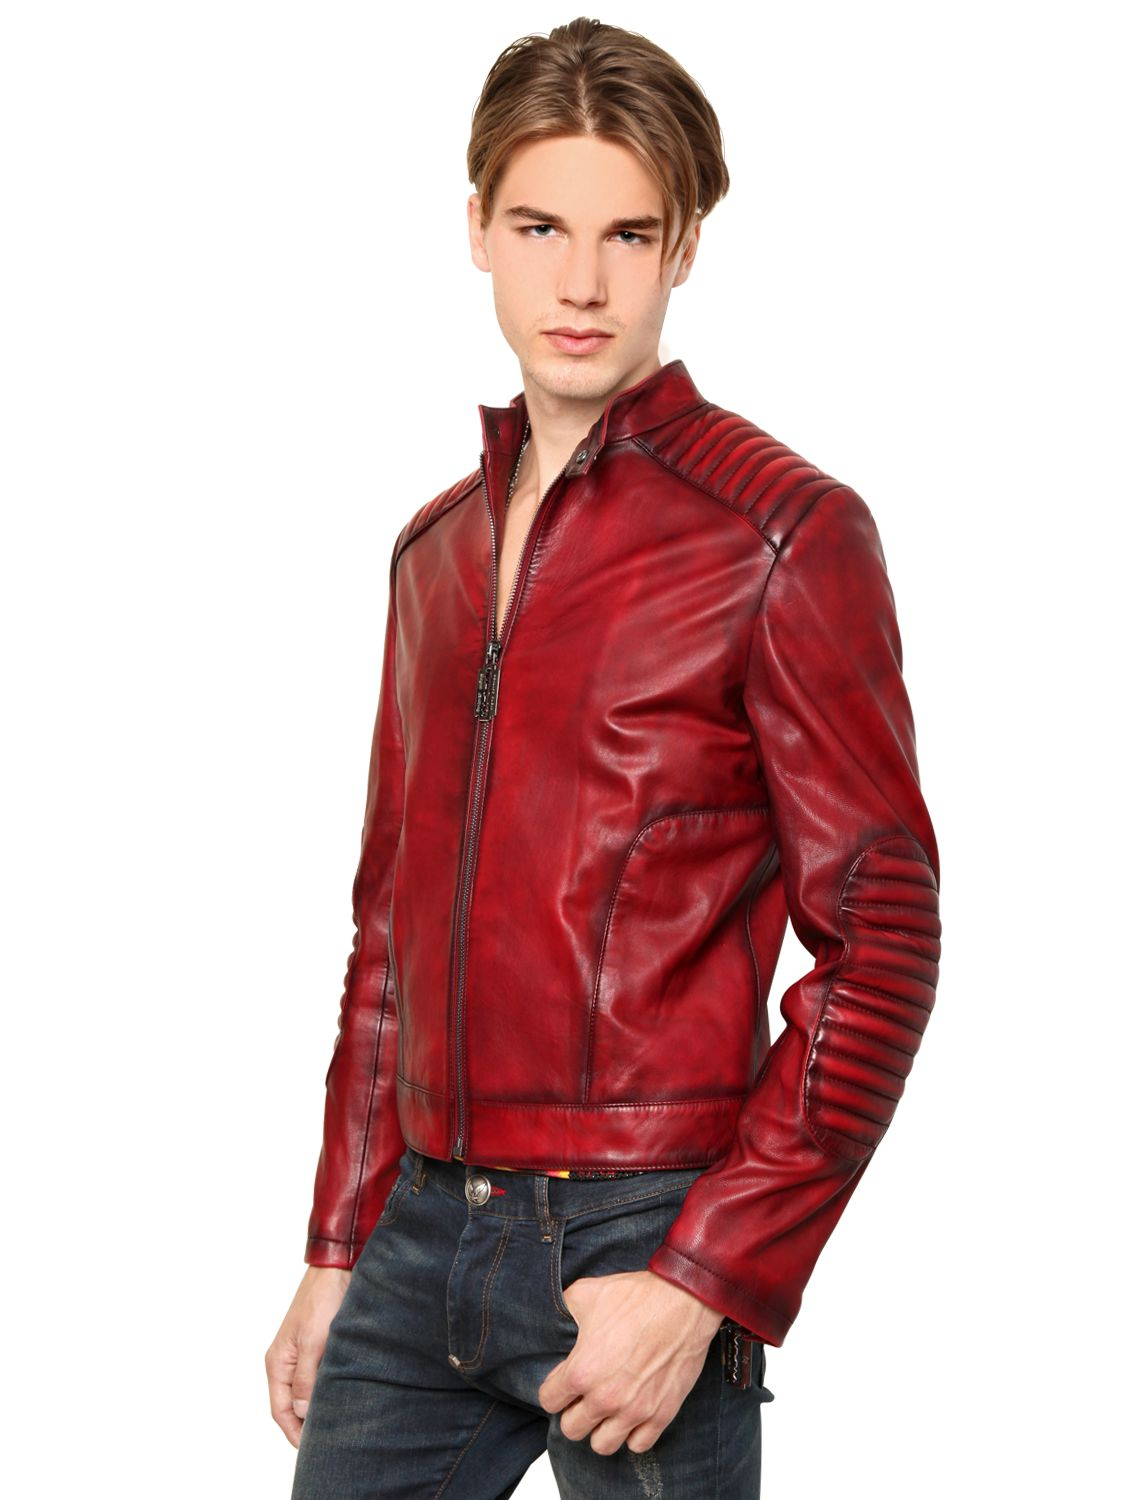 philipp plein vintaged legacy biker leather jacket in red. Black Bedroom Furniture Sets. Home Design Ideas